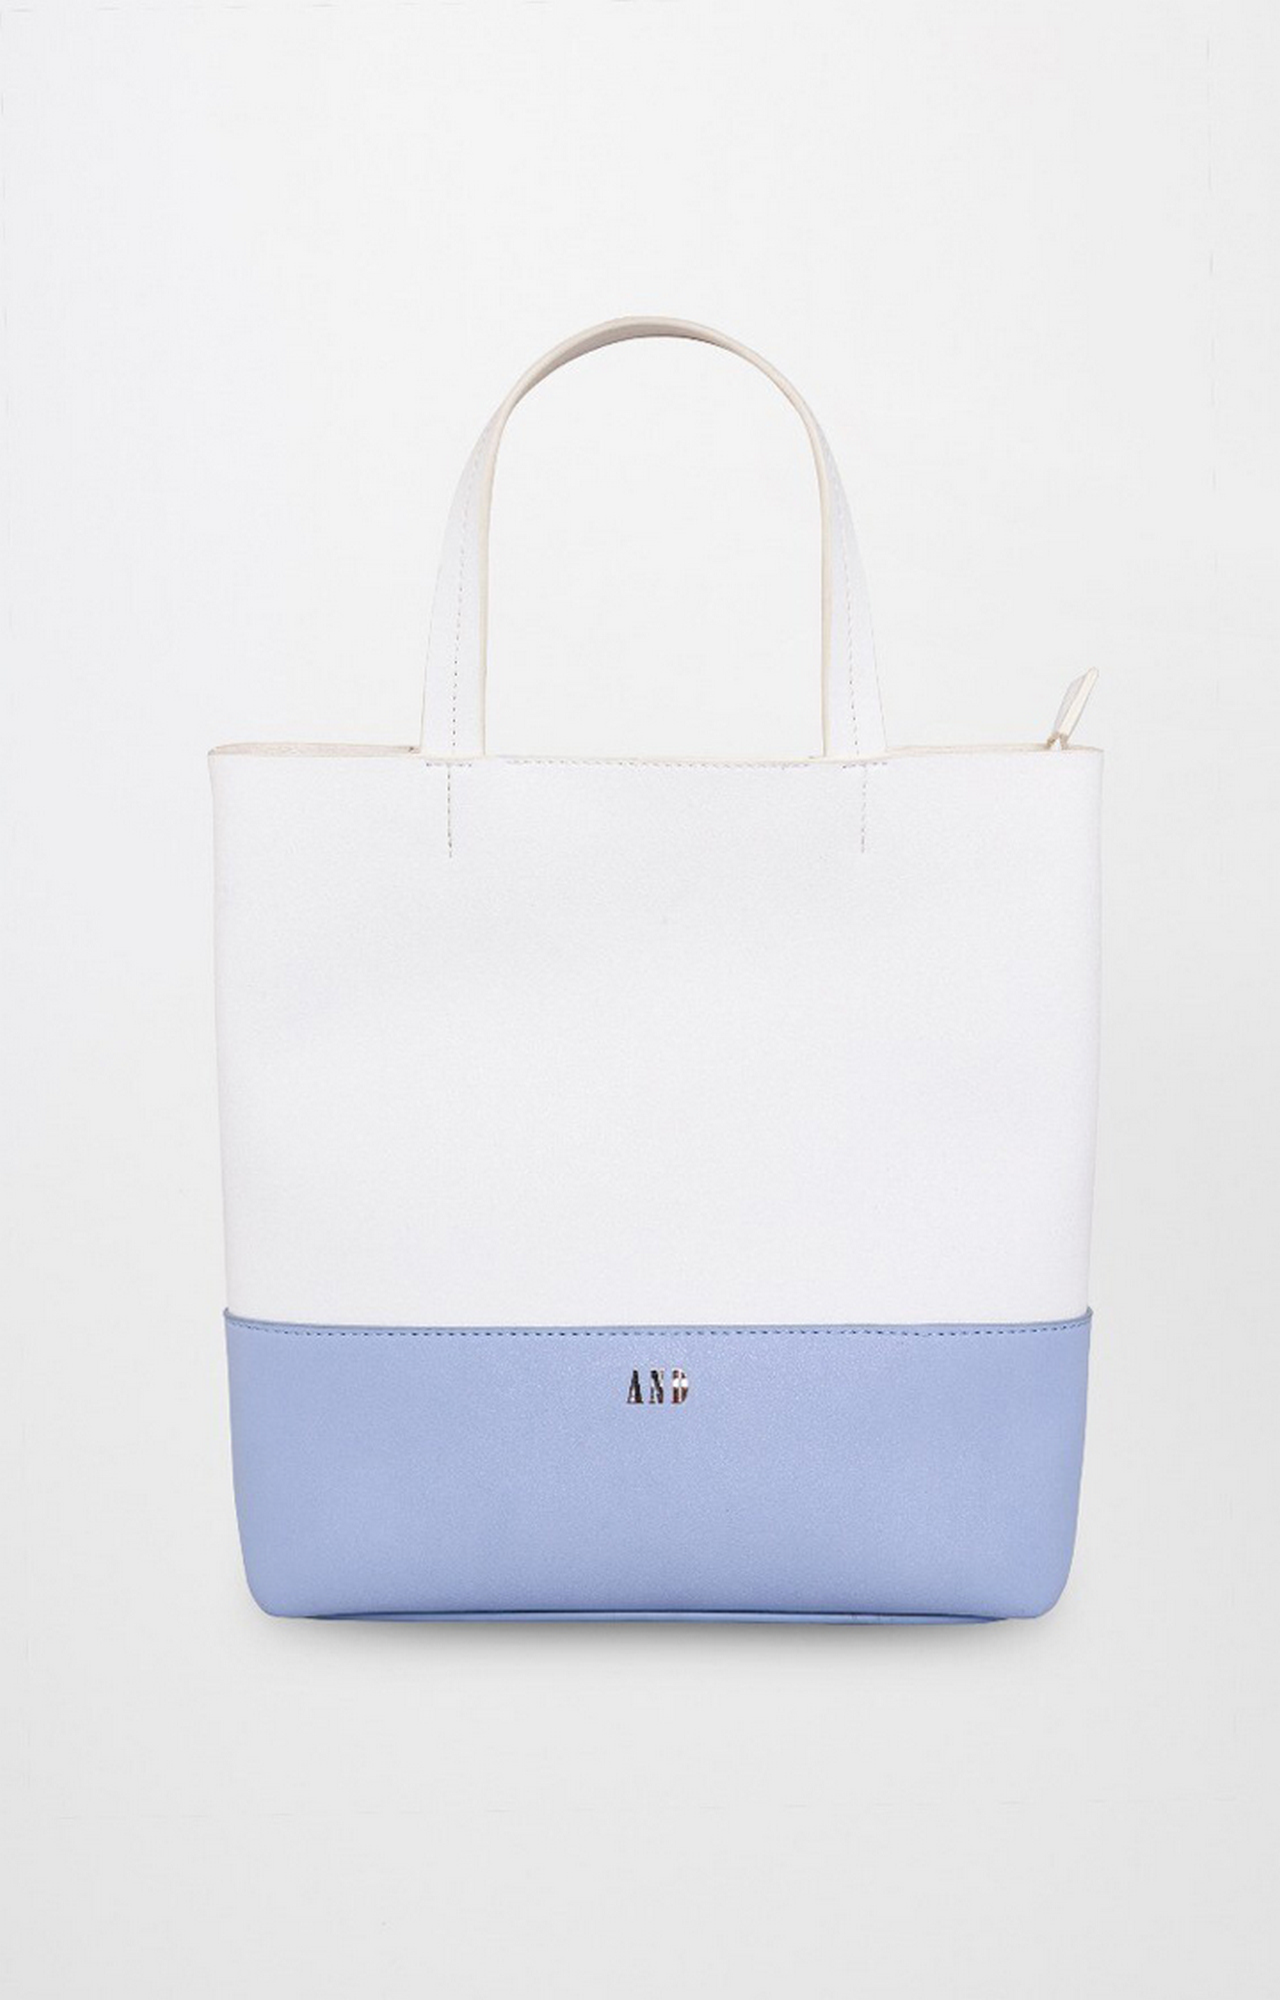 AND | White and Blue Tote